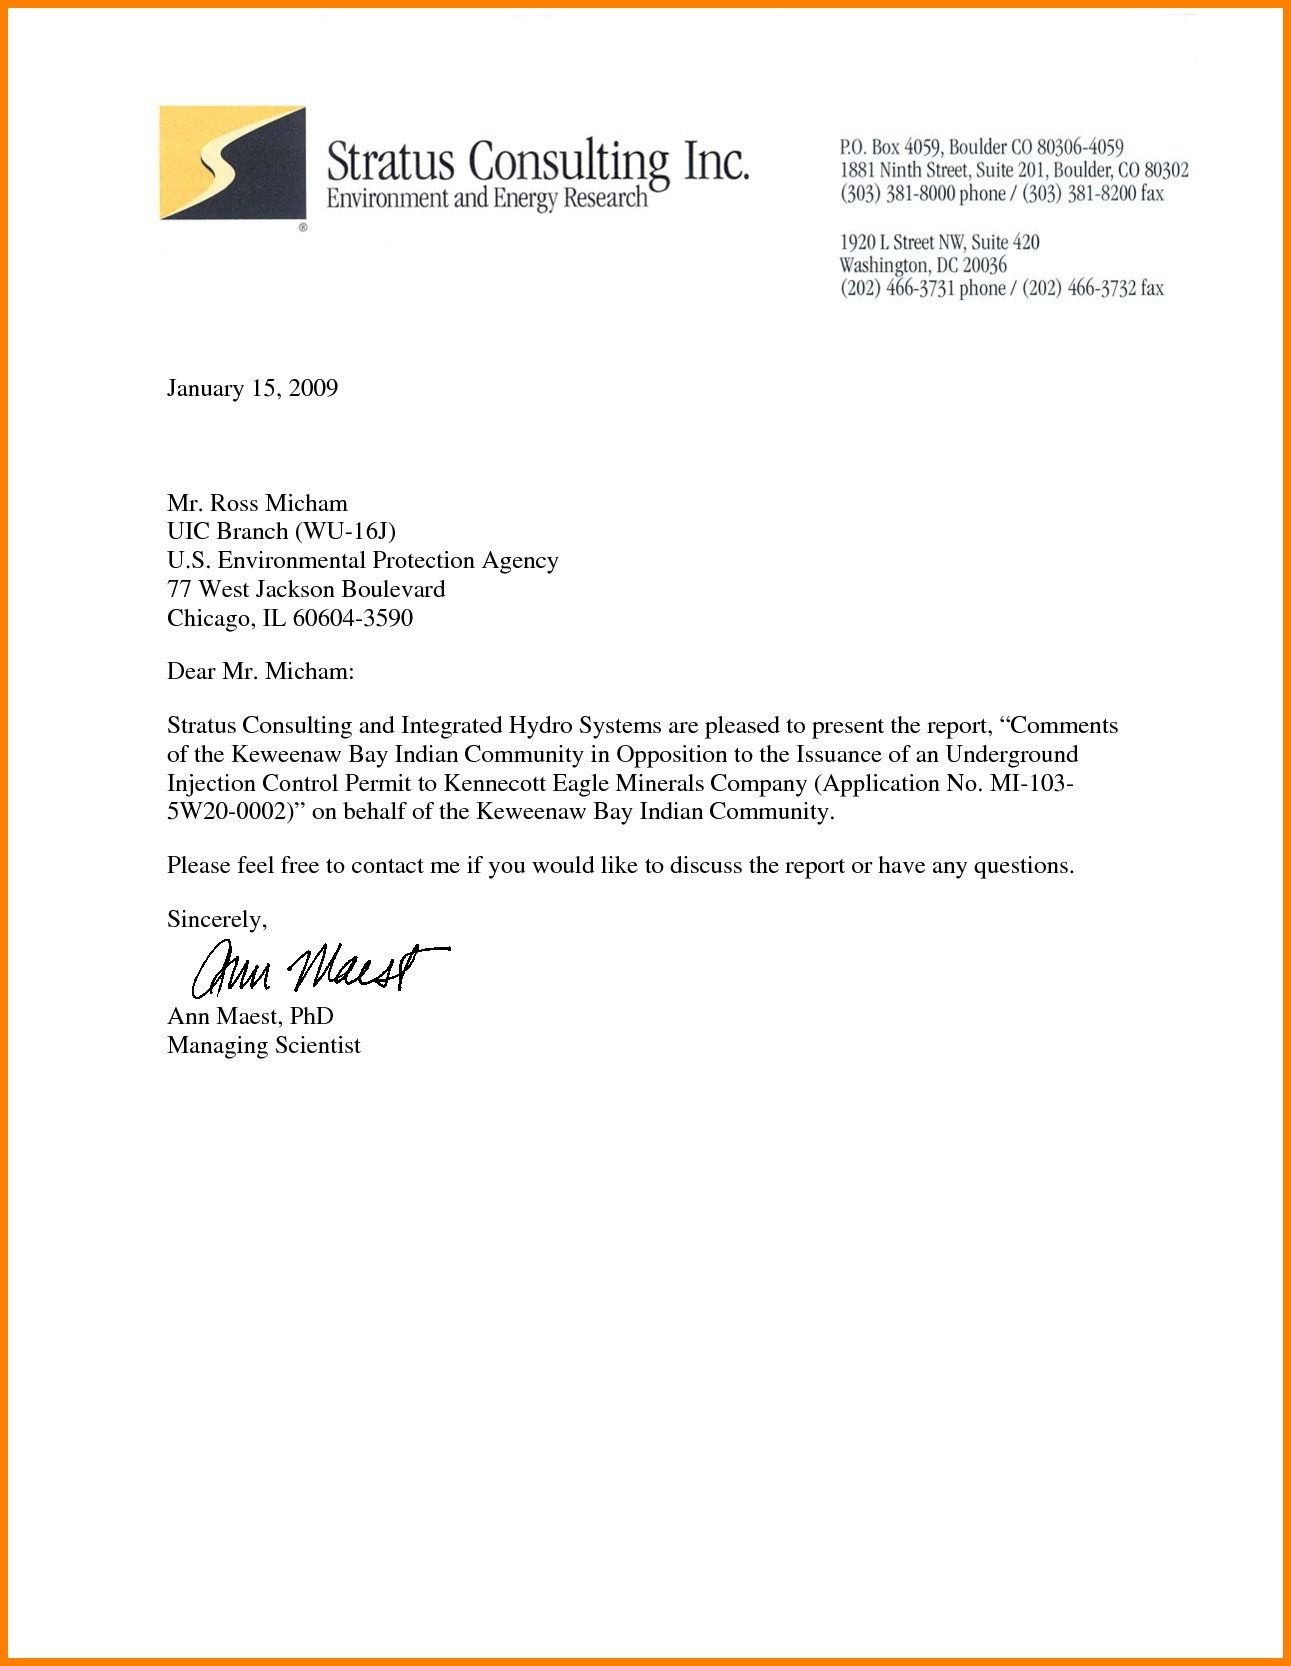 Business Letterhead Format Business Letterhead Examples Into